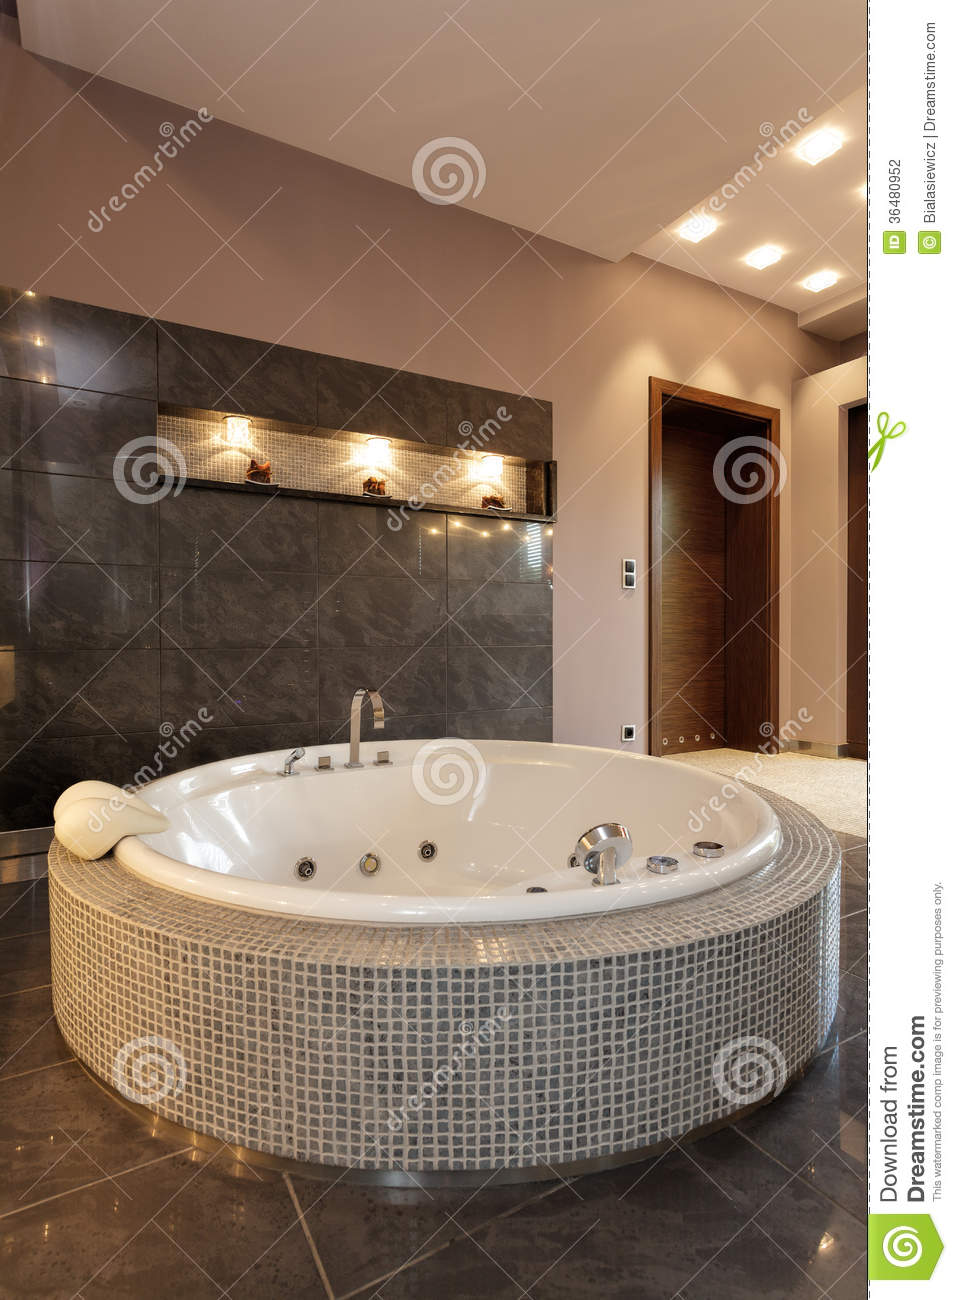 Exclusive Round Bath Stock Photo Image Of Mansion